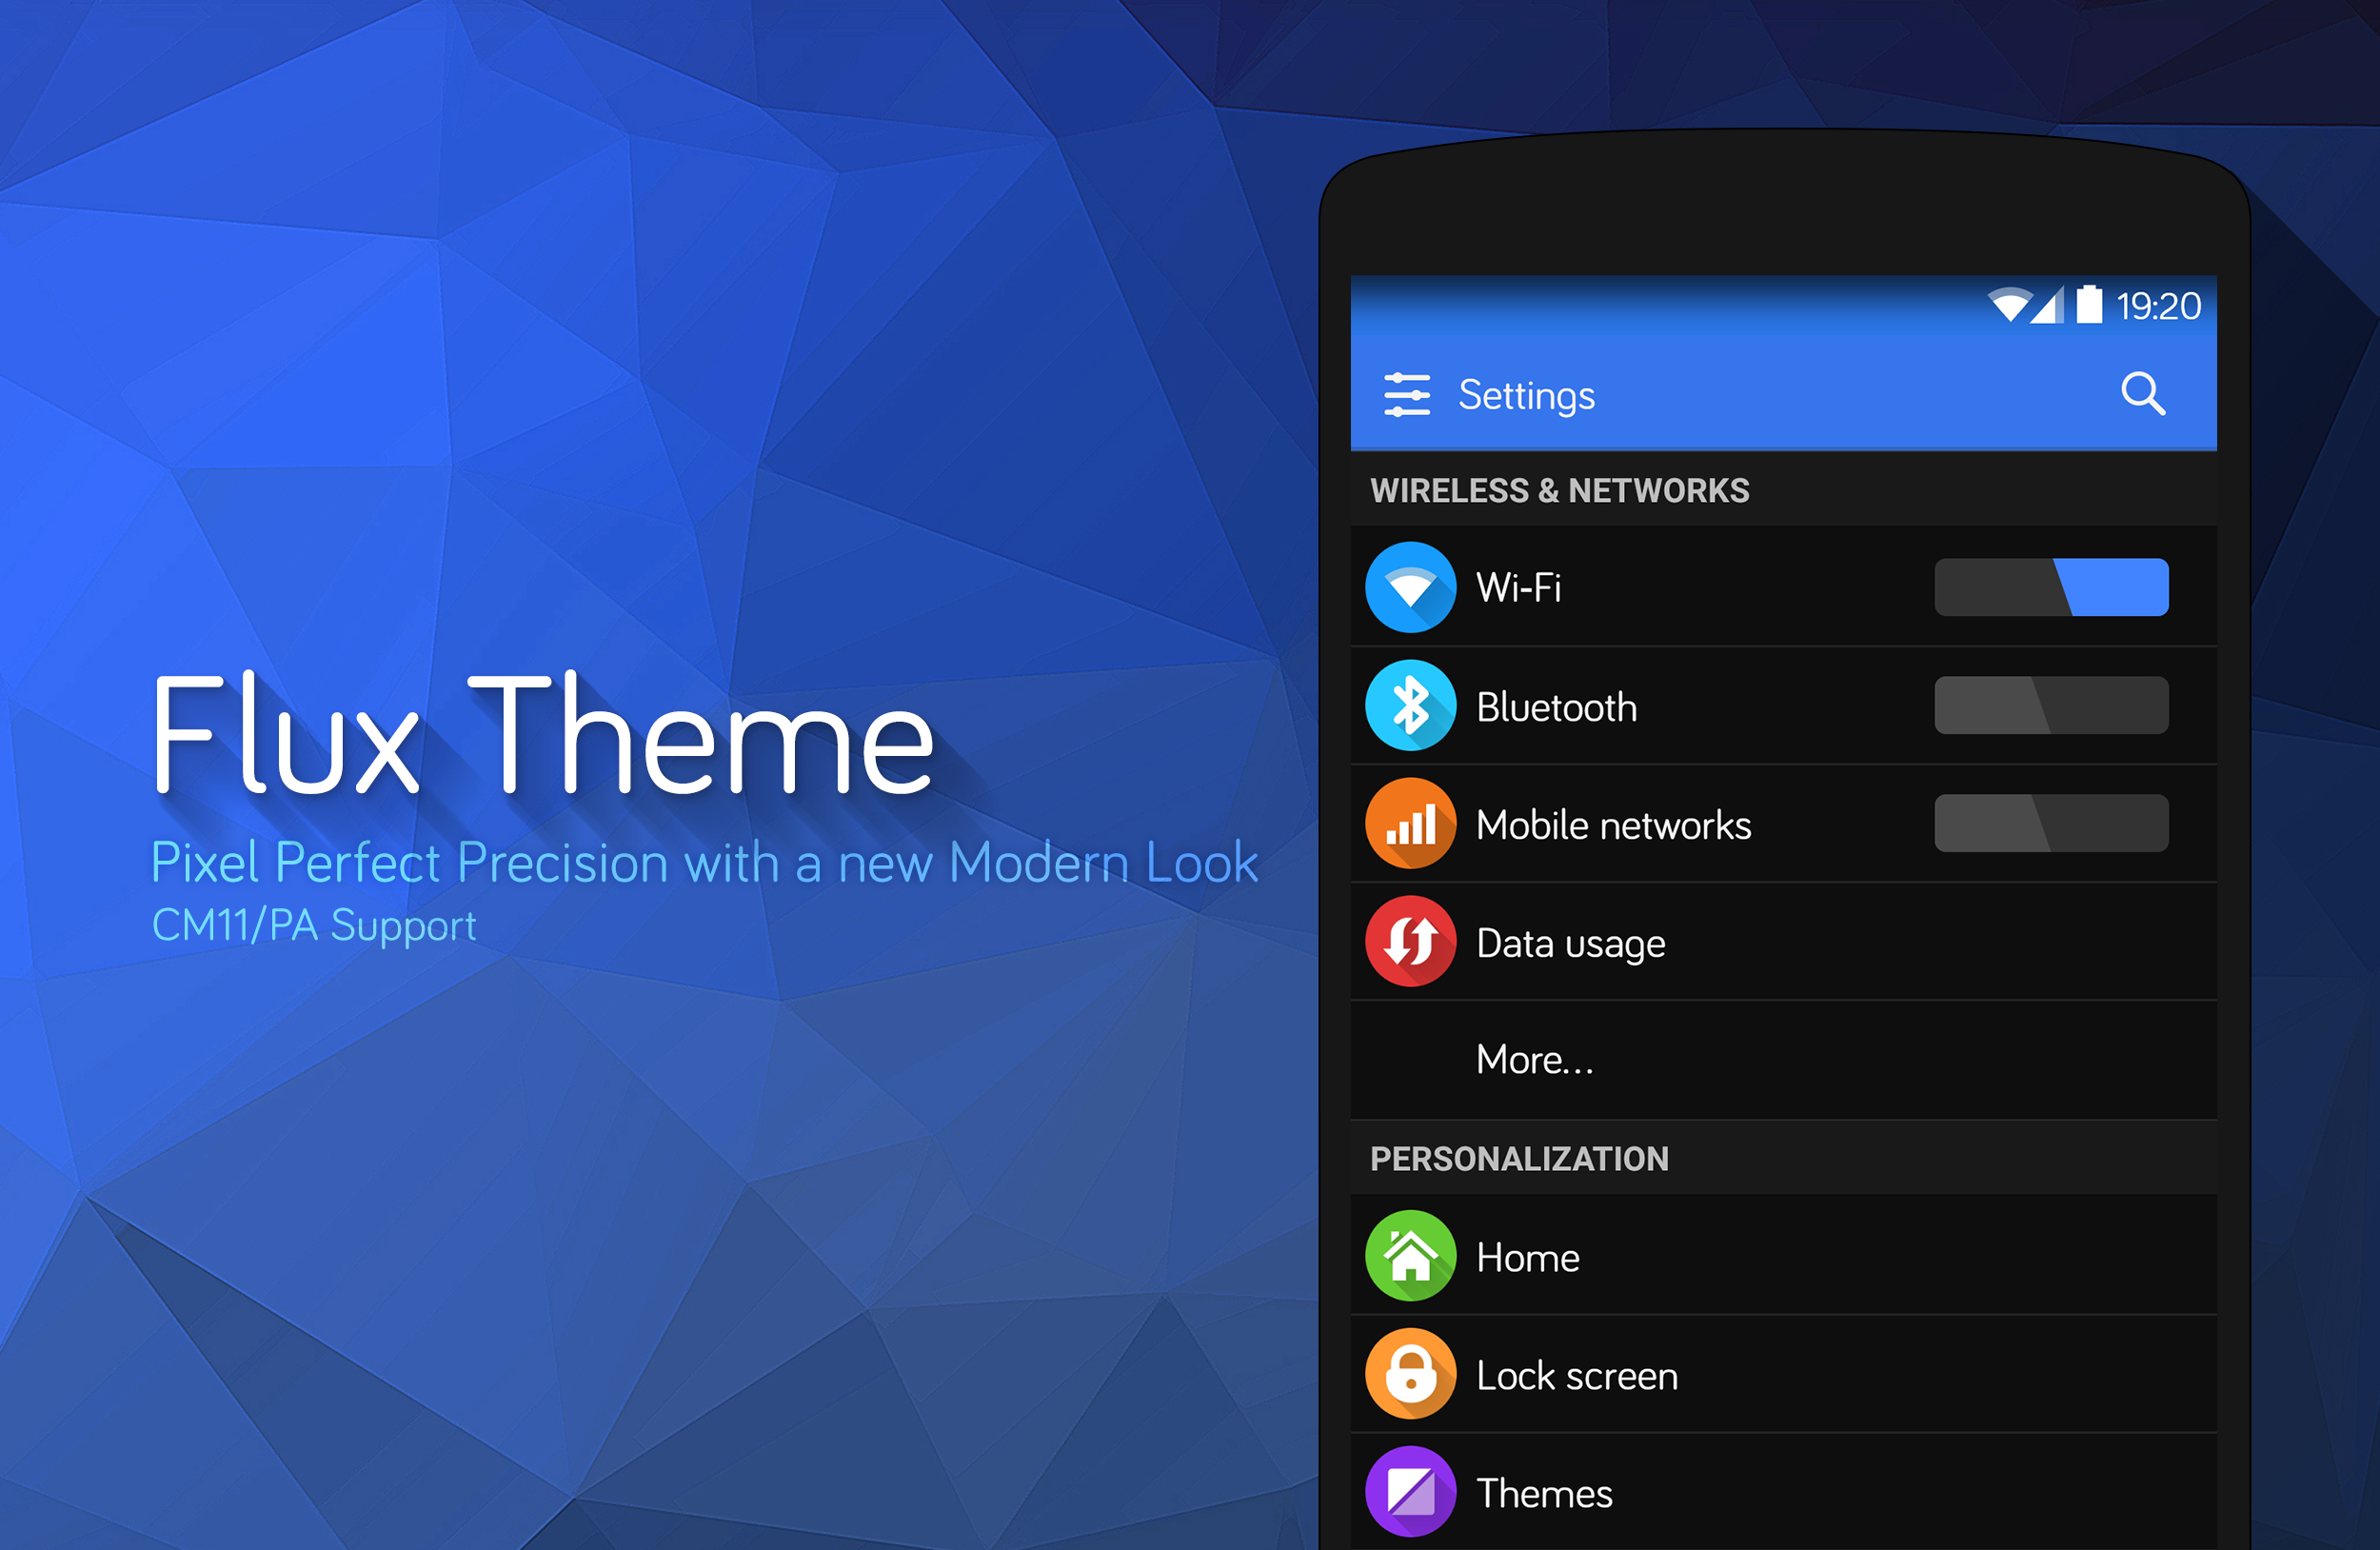 15 Best CyanogenMod 11 Themes For your Android Device